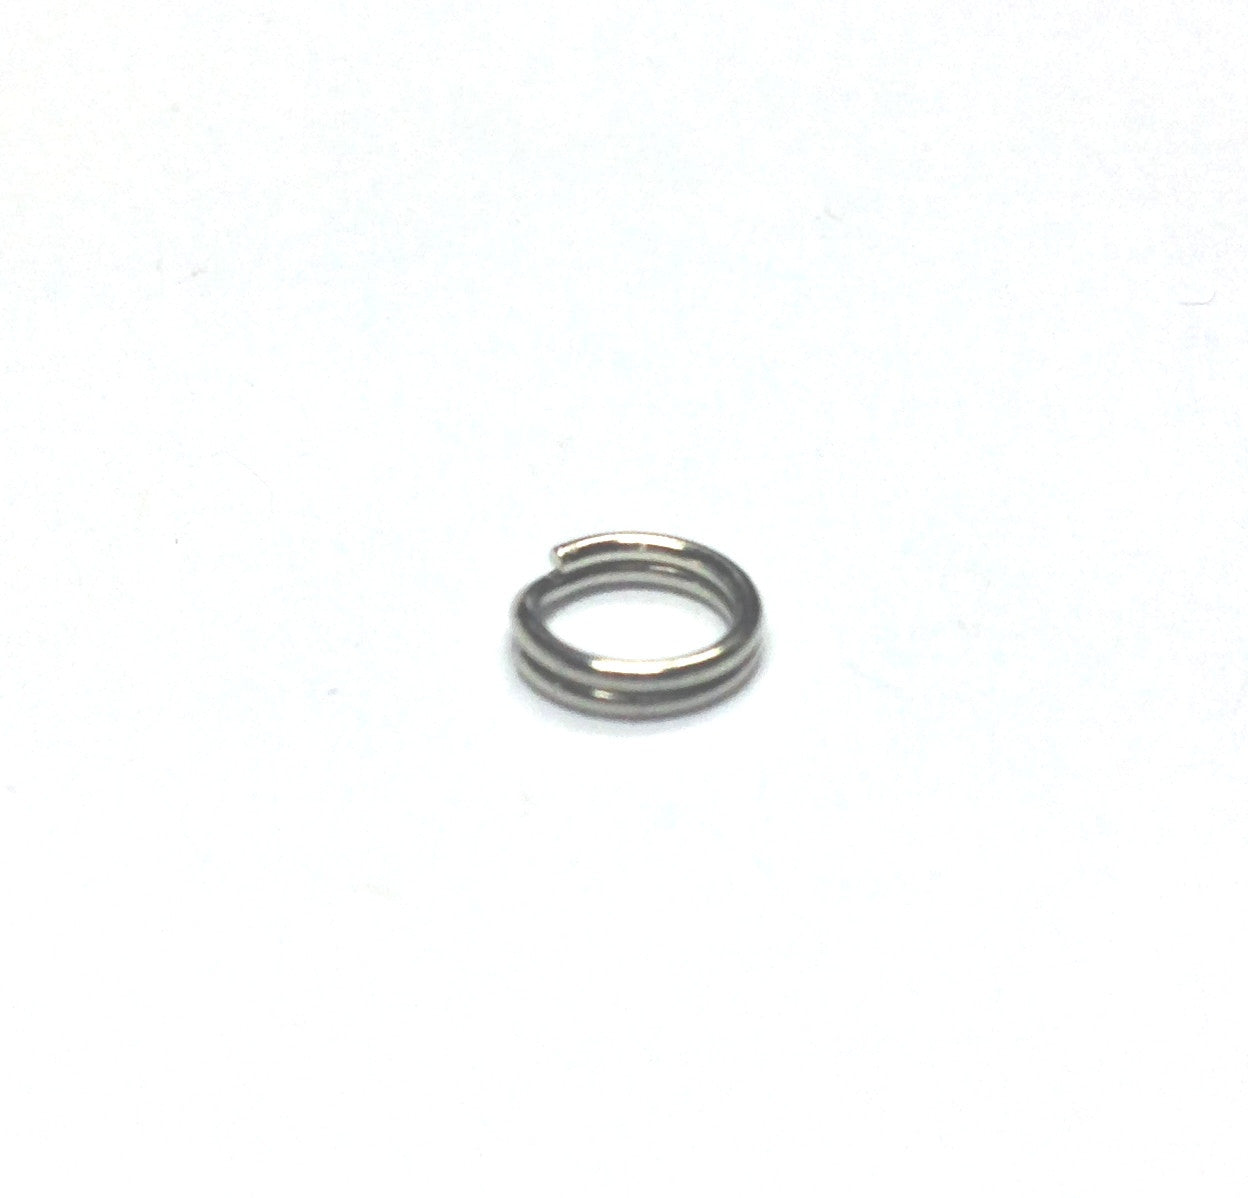 12MM Split Ring Nickel (144 pieces)